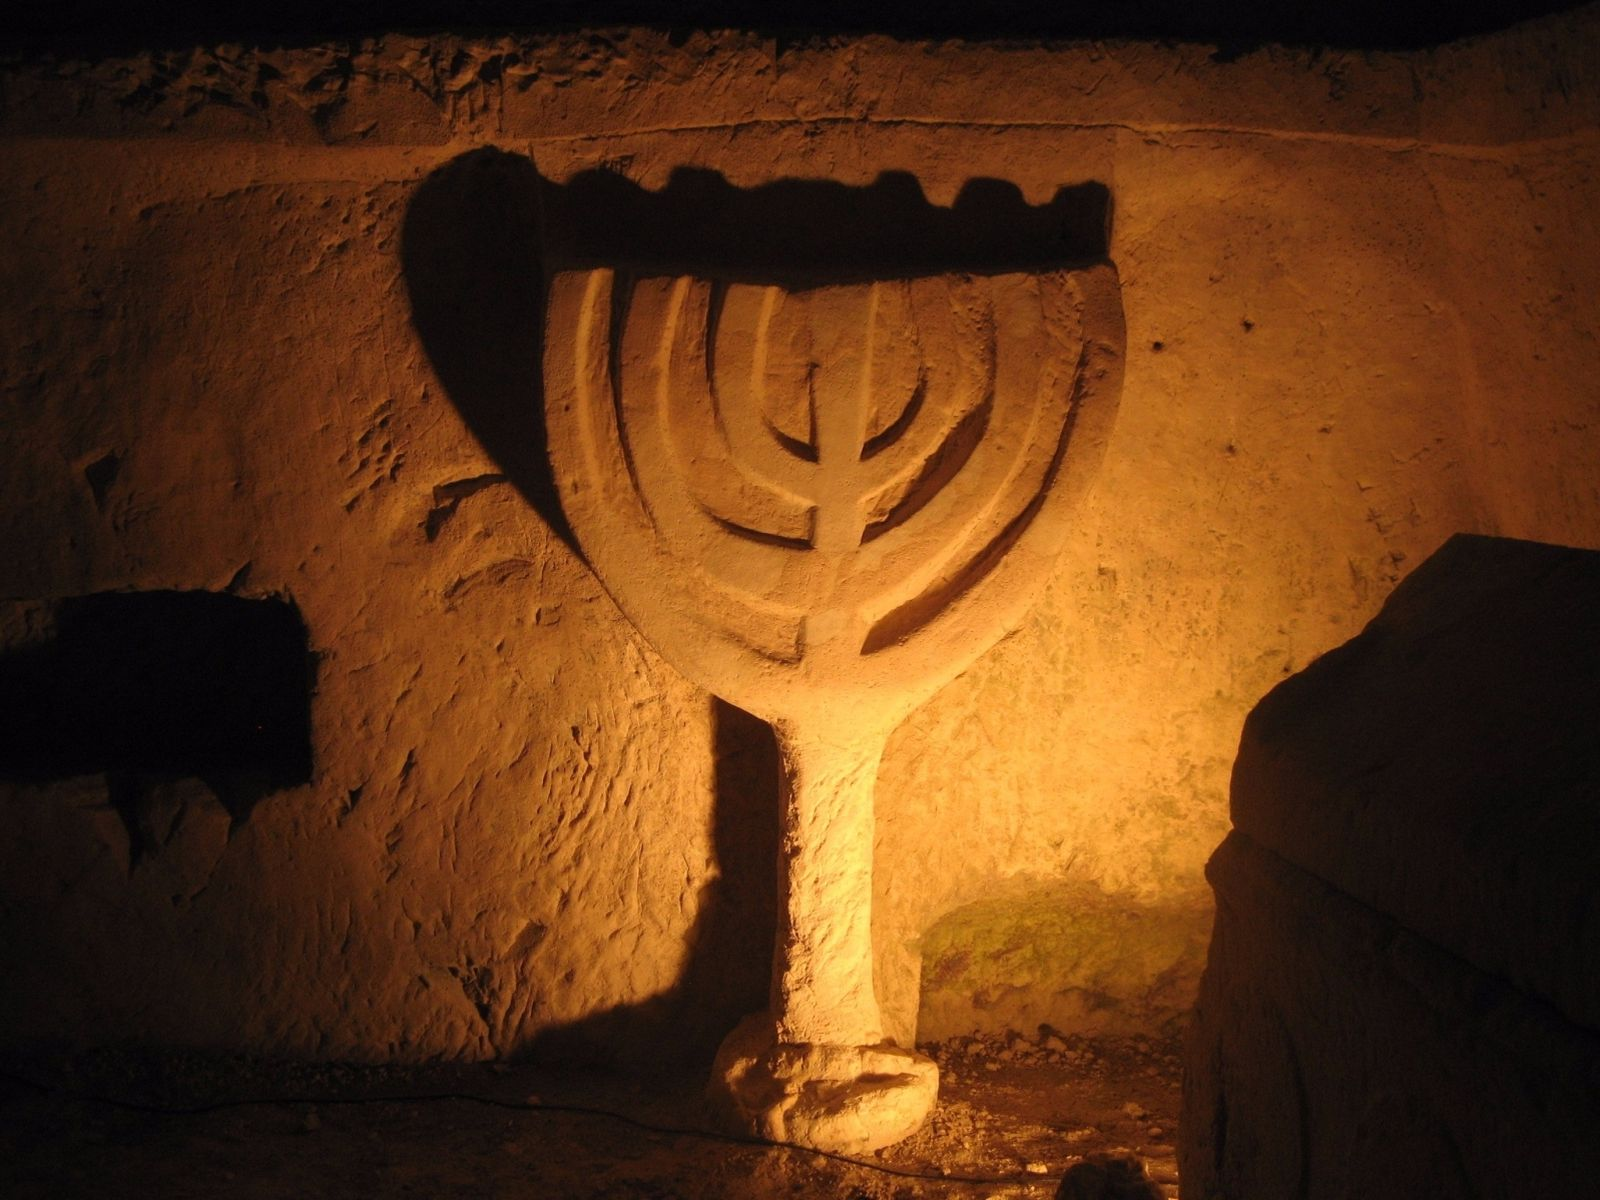 Catacomb 20 at Beit She'arim. Photo by Tsvika Tsuk/Israel Nature and Parks Authority